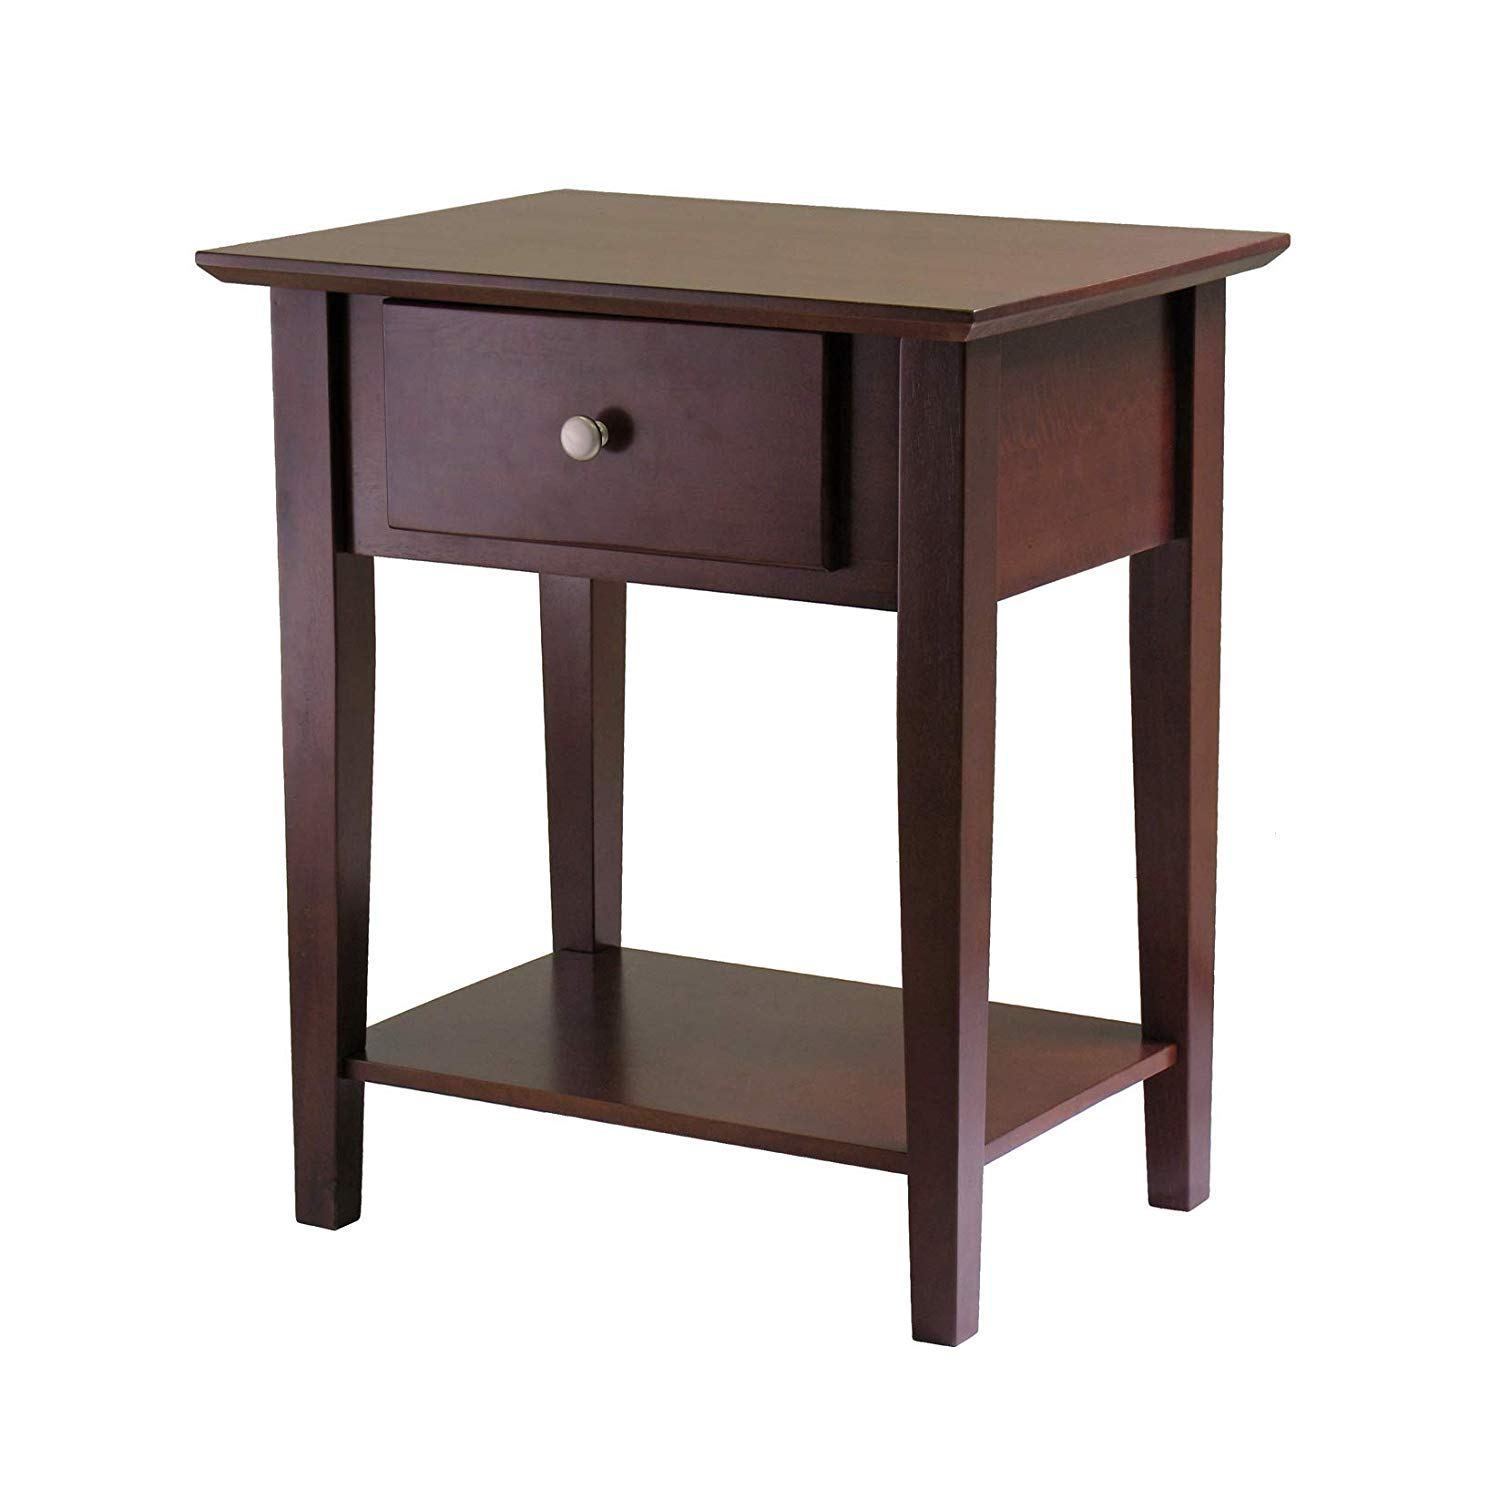 winsome wood shaker accent table antique walnut kitchen dining round end tablecloth mid century modern bedside tables couch legs small cabinet with drawers tall black side grey